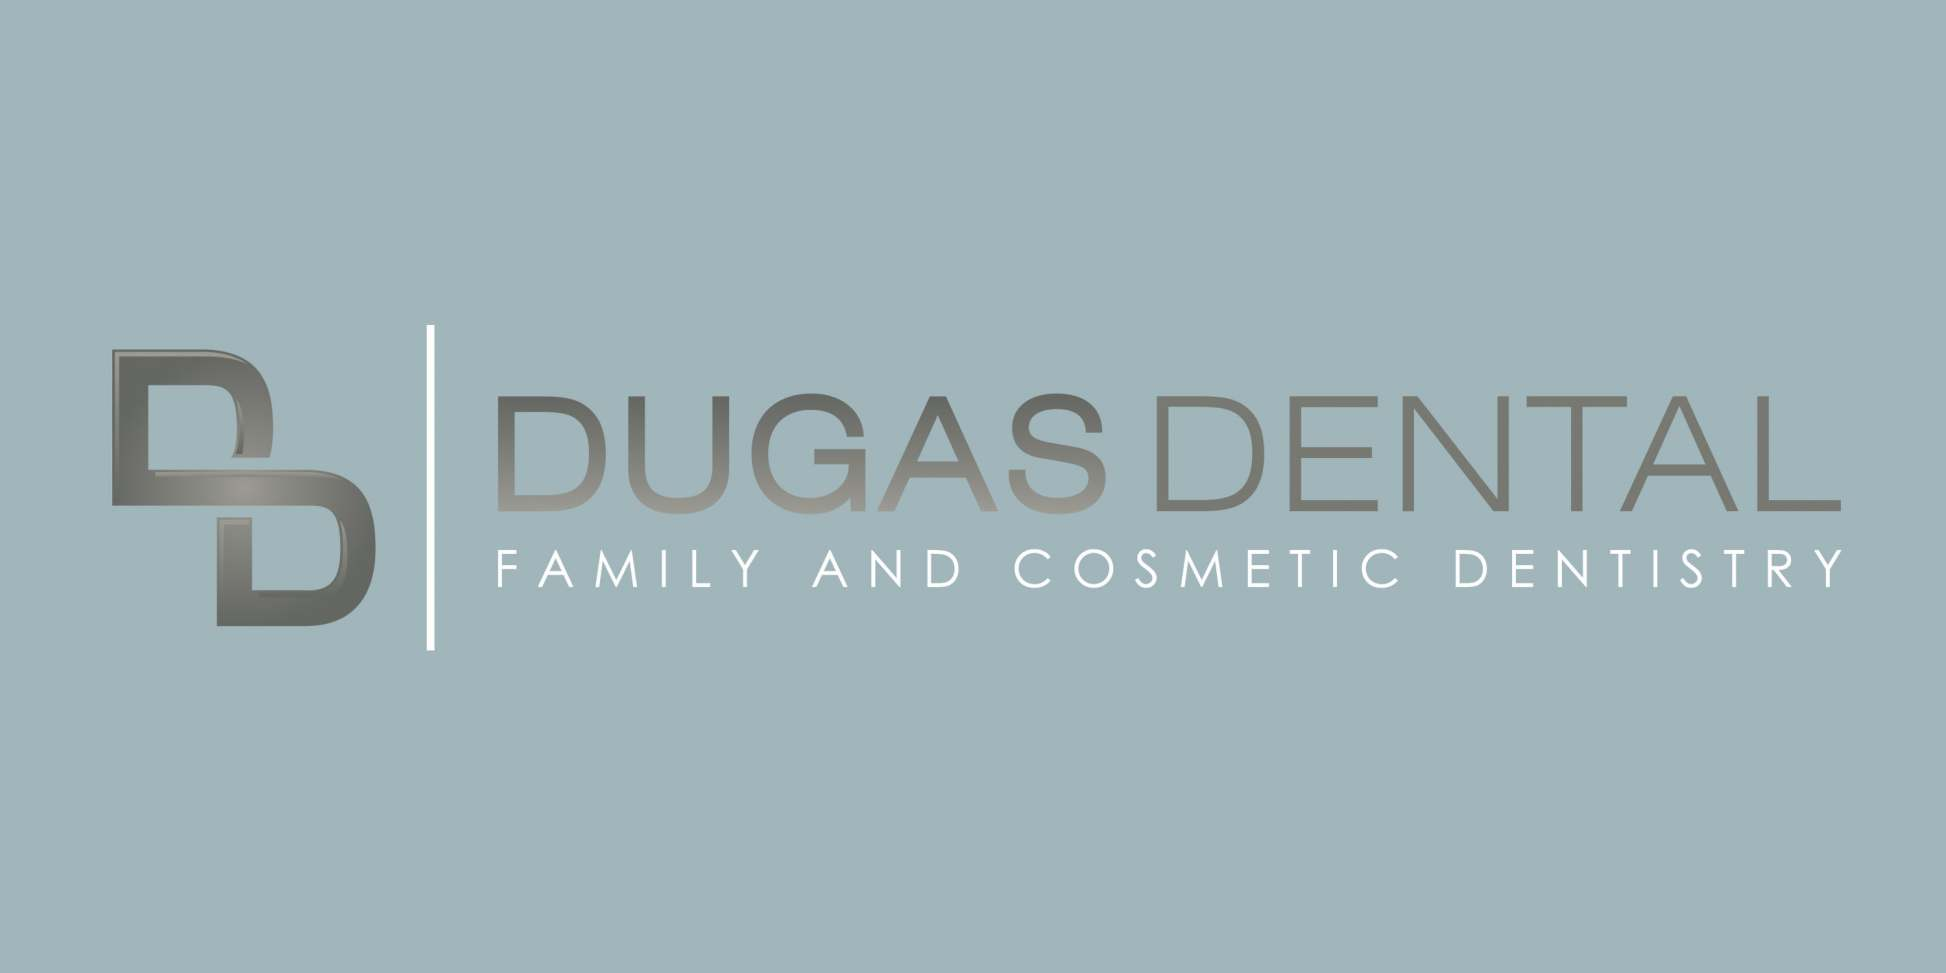 Dugas Dental - Family and Cosmetic Dentistry Logo